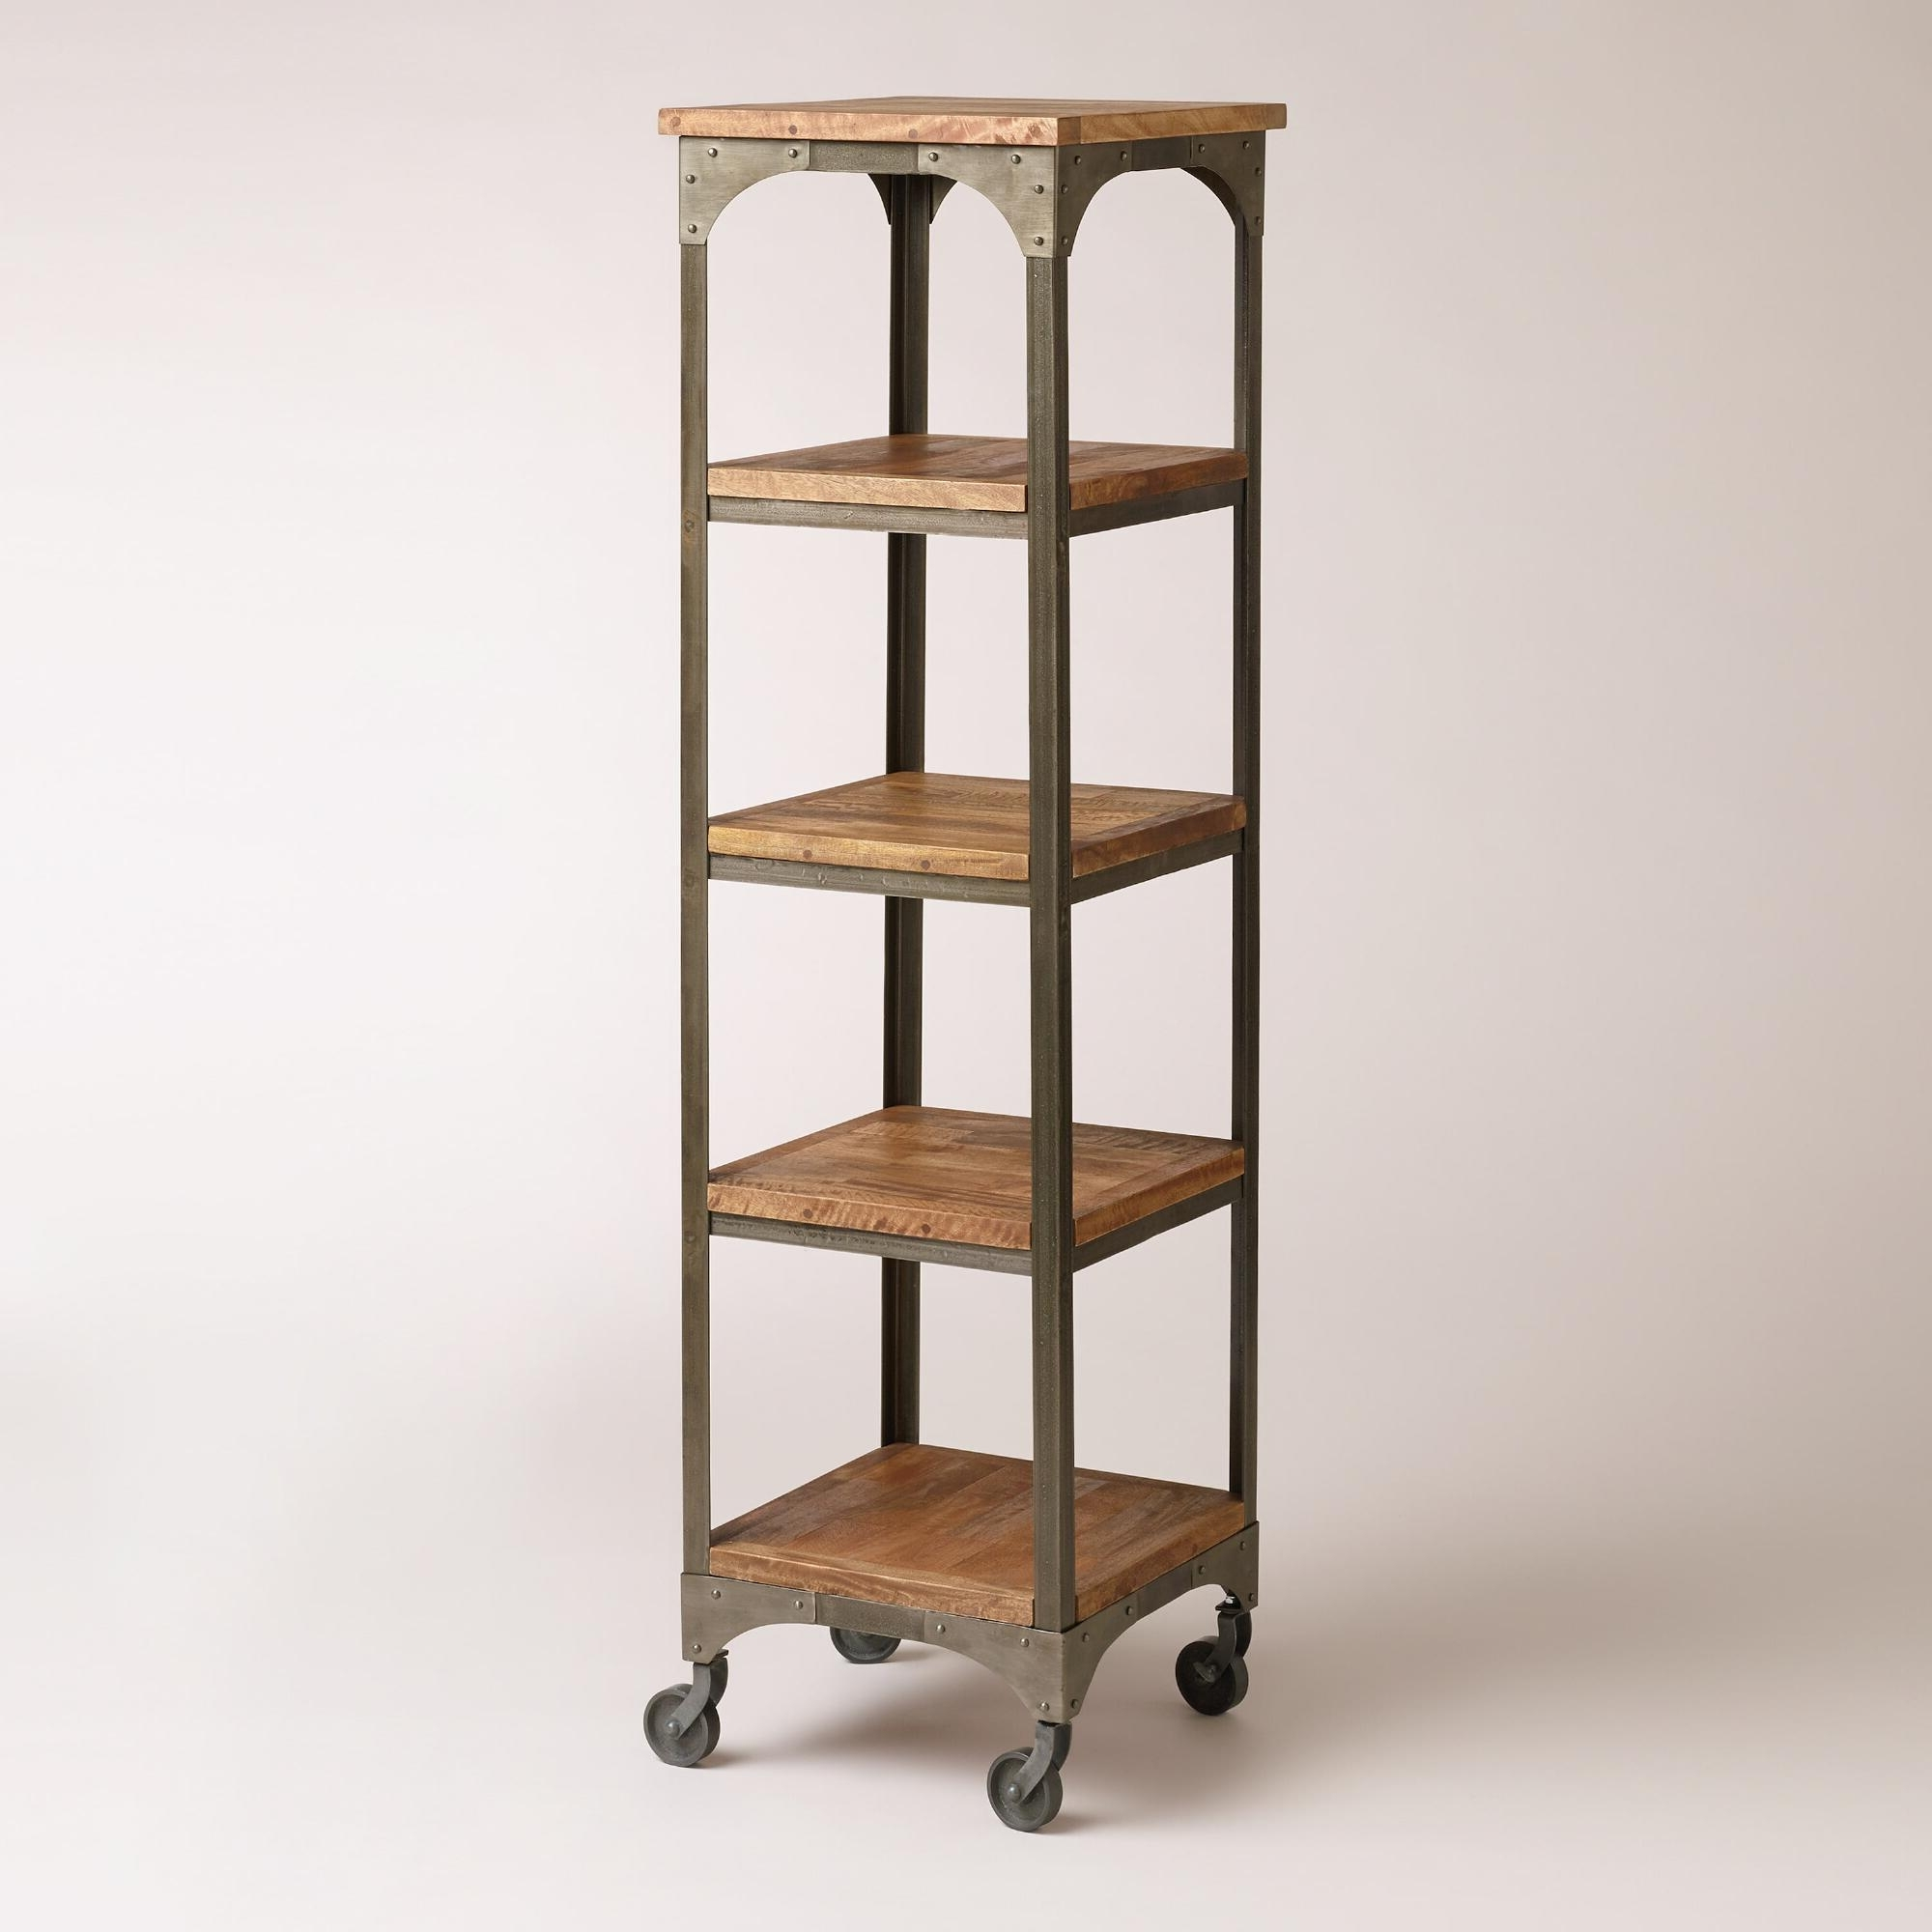 Latest World Market Bookcases In Our Four Shelf Tower Gives Your Space A Rustic, Industrial Feel (View 15 of 15)